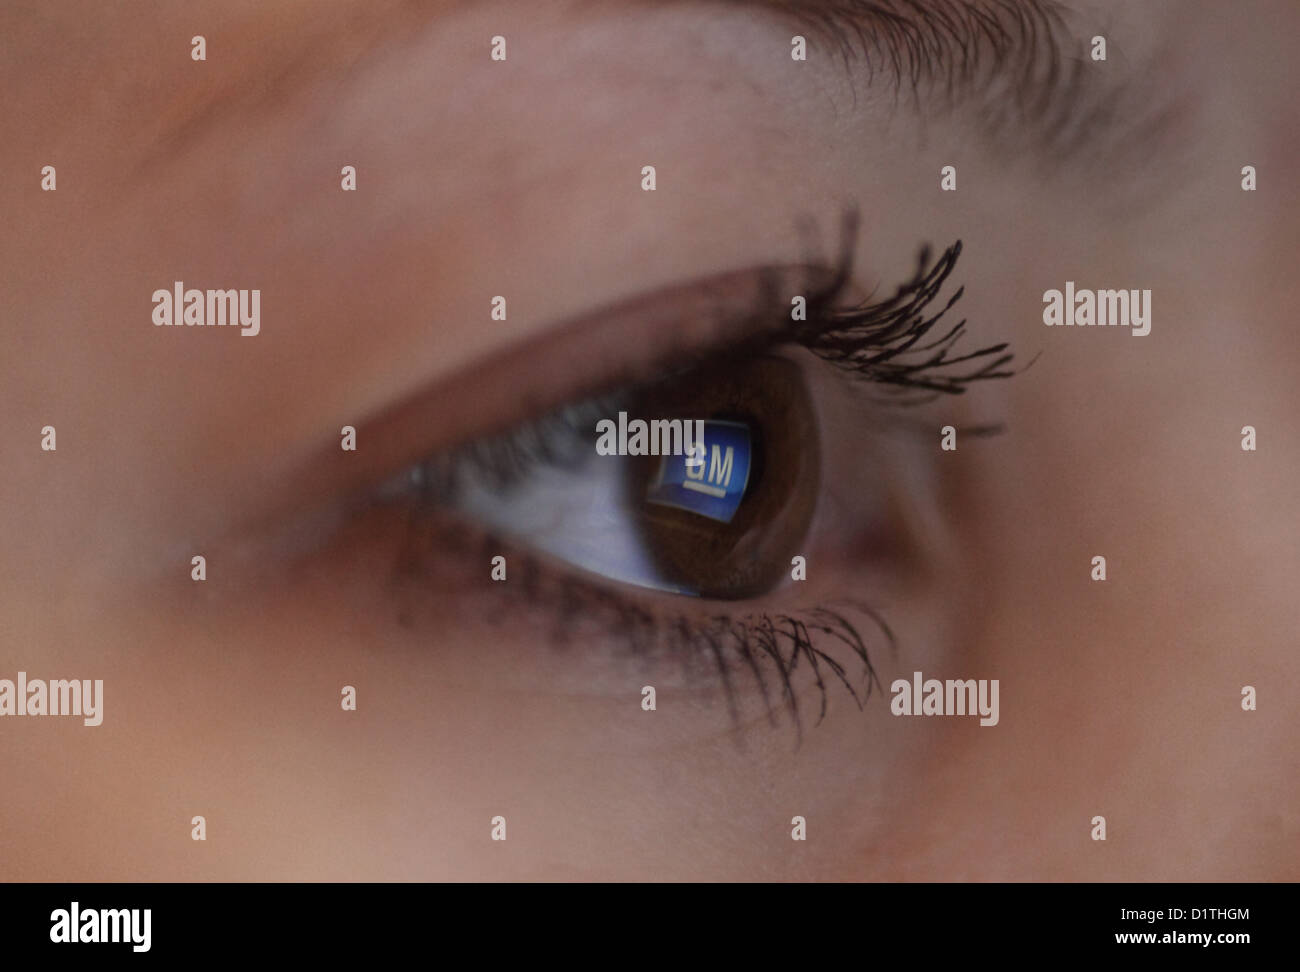 Berlin, Germany, mirroring the General Motors logo in the eye of a woman - Stock Image